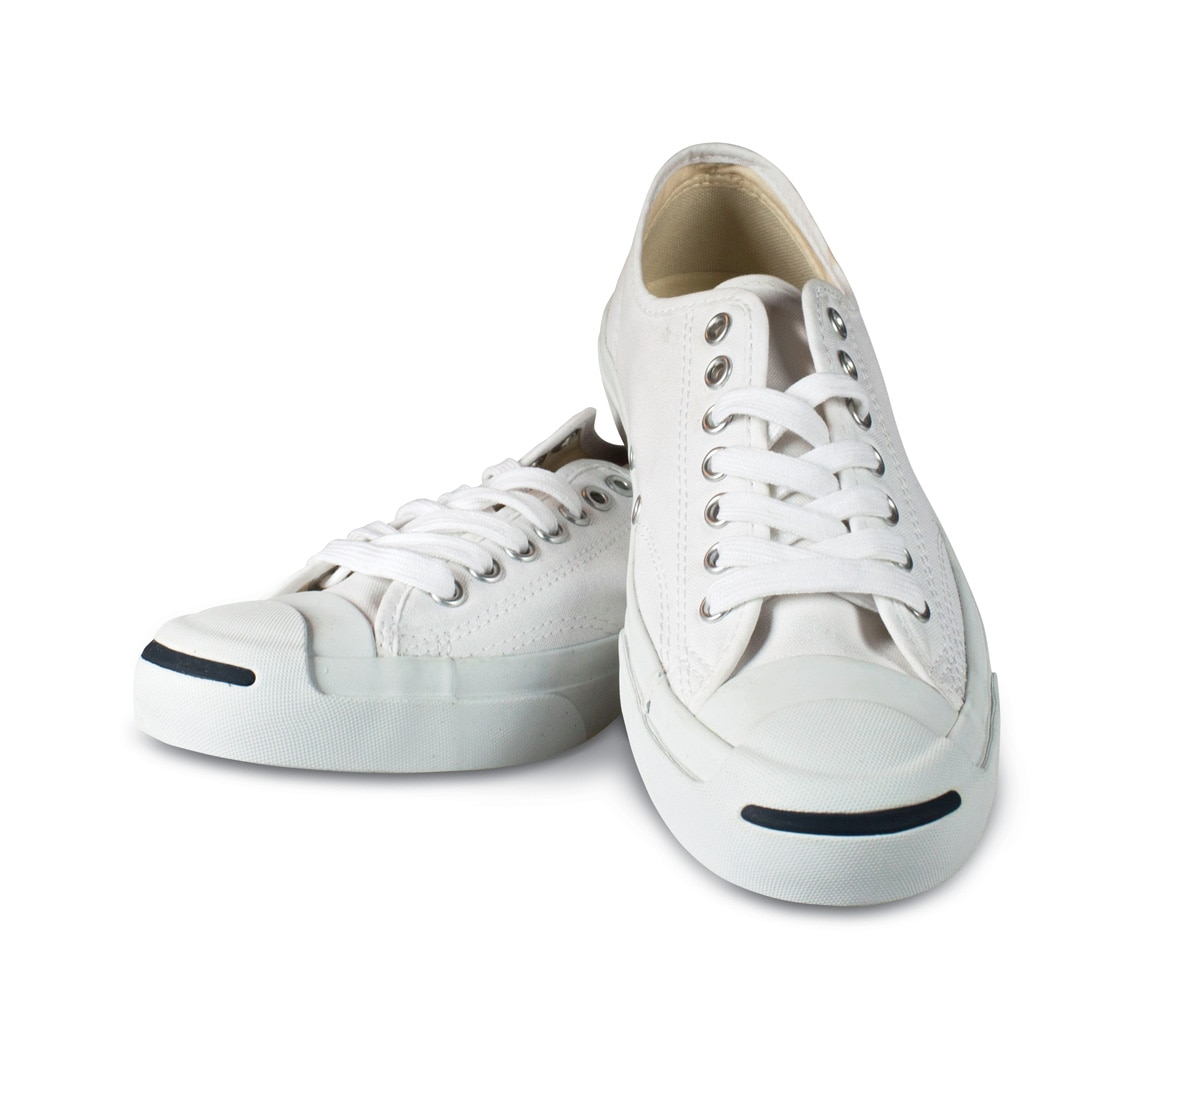 """White Sneaker - """"The low-top Achilles by Common Projects is my favorite. It's the classic cool-guy white sneaker, really clean and simple. You can almost wear it witha suit, and it's great without socks. Axel Arigato makes a very similar style—and you can definitely do a low-top classic white Converse Jack Purcell, too."""""""